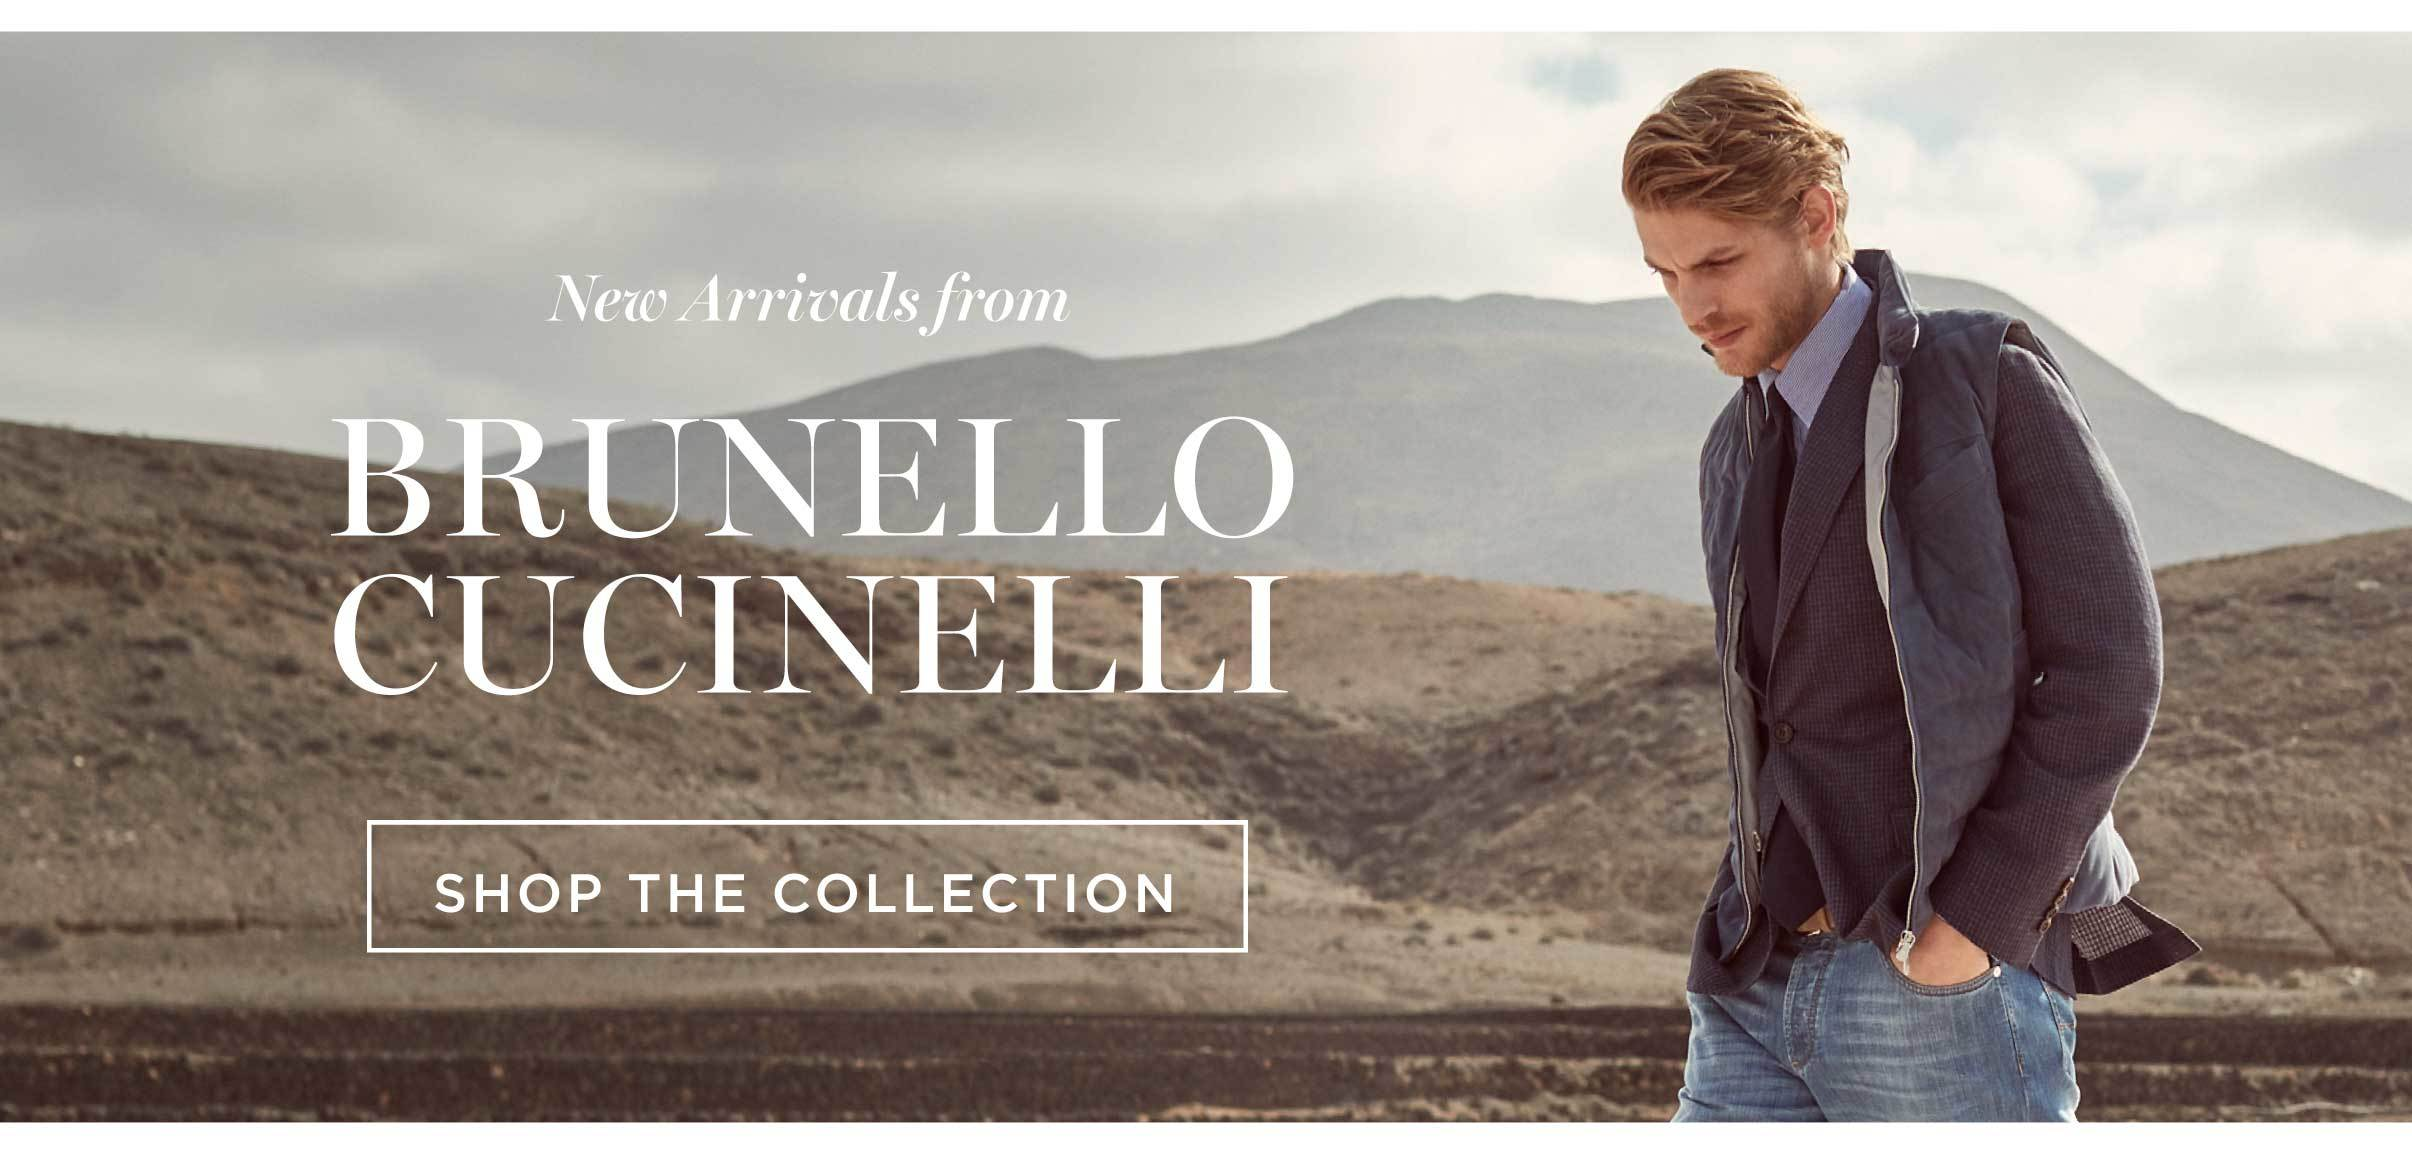 New Arrivals from Brunello Cucinelli